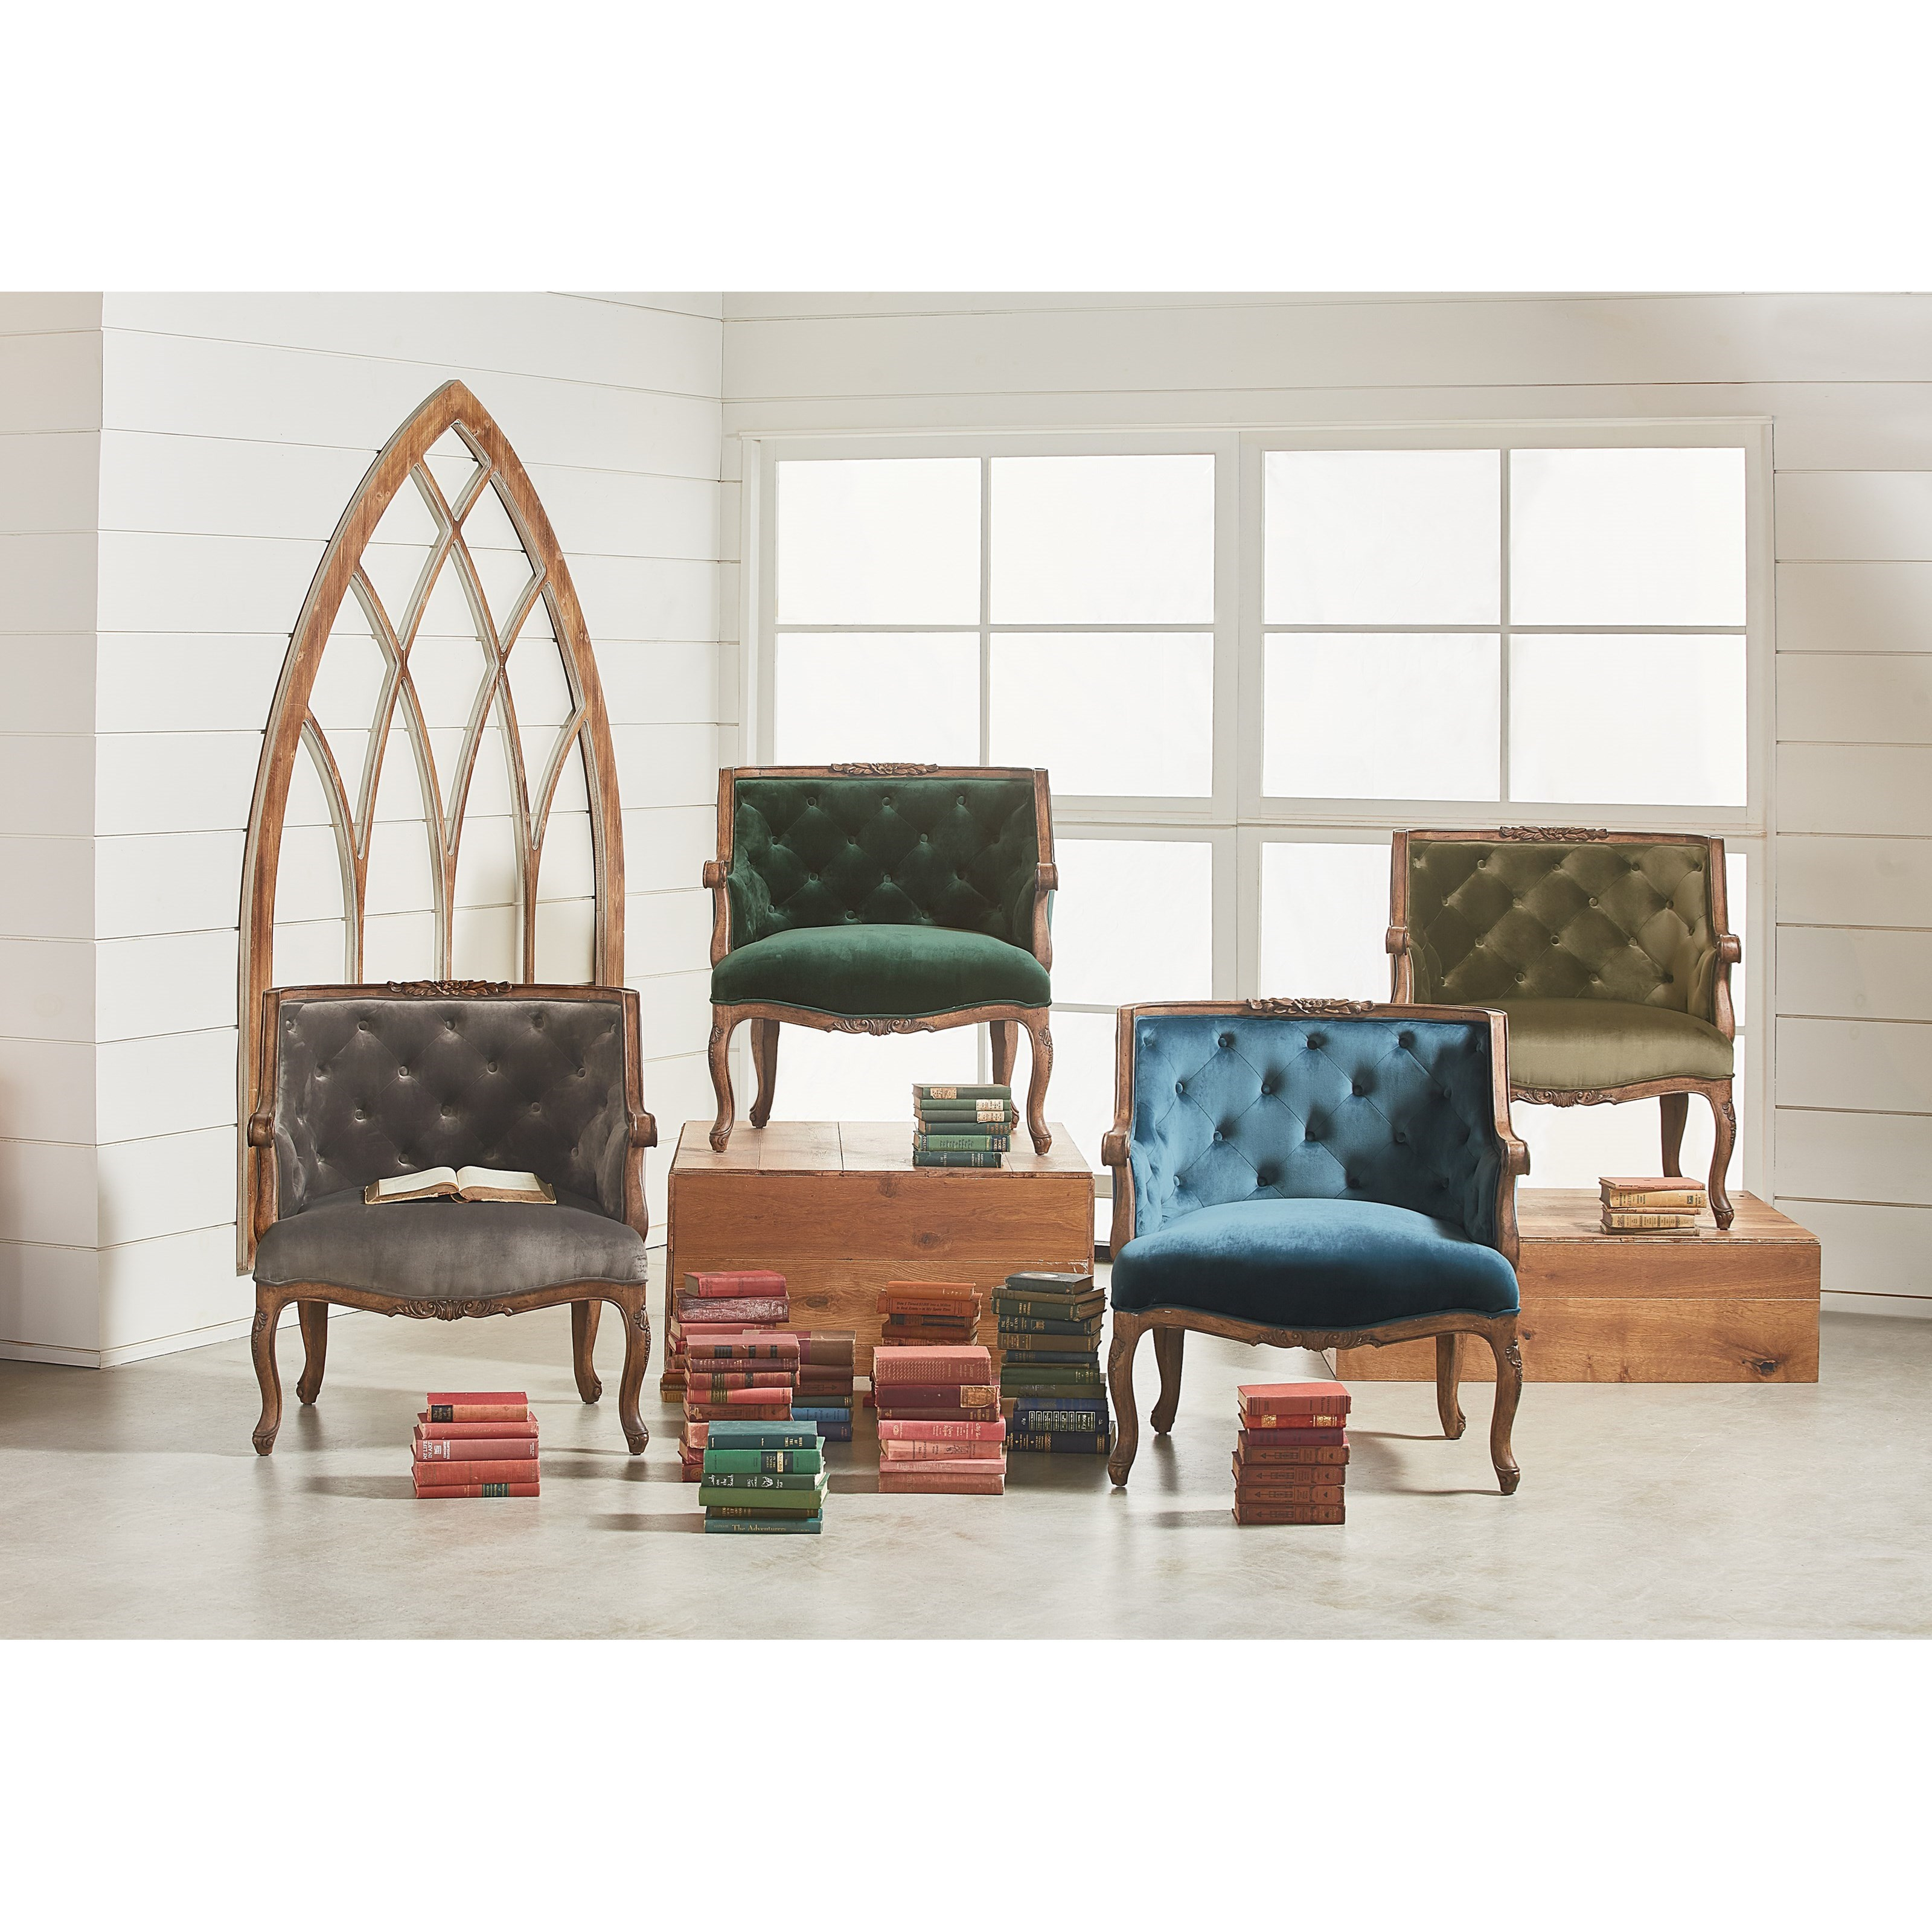 Sofa Mart Accent Chairs: Magnolia Home By Joanna Gaines Accent Chair Bloom